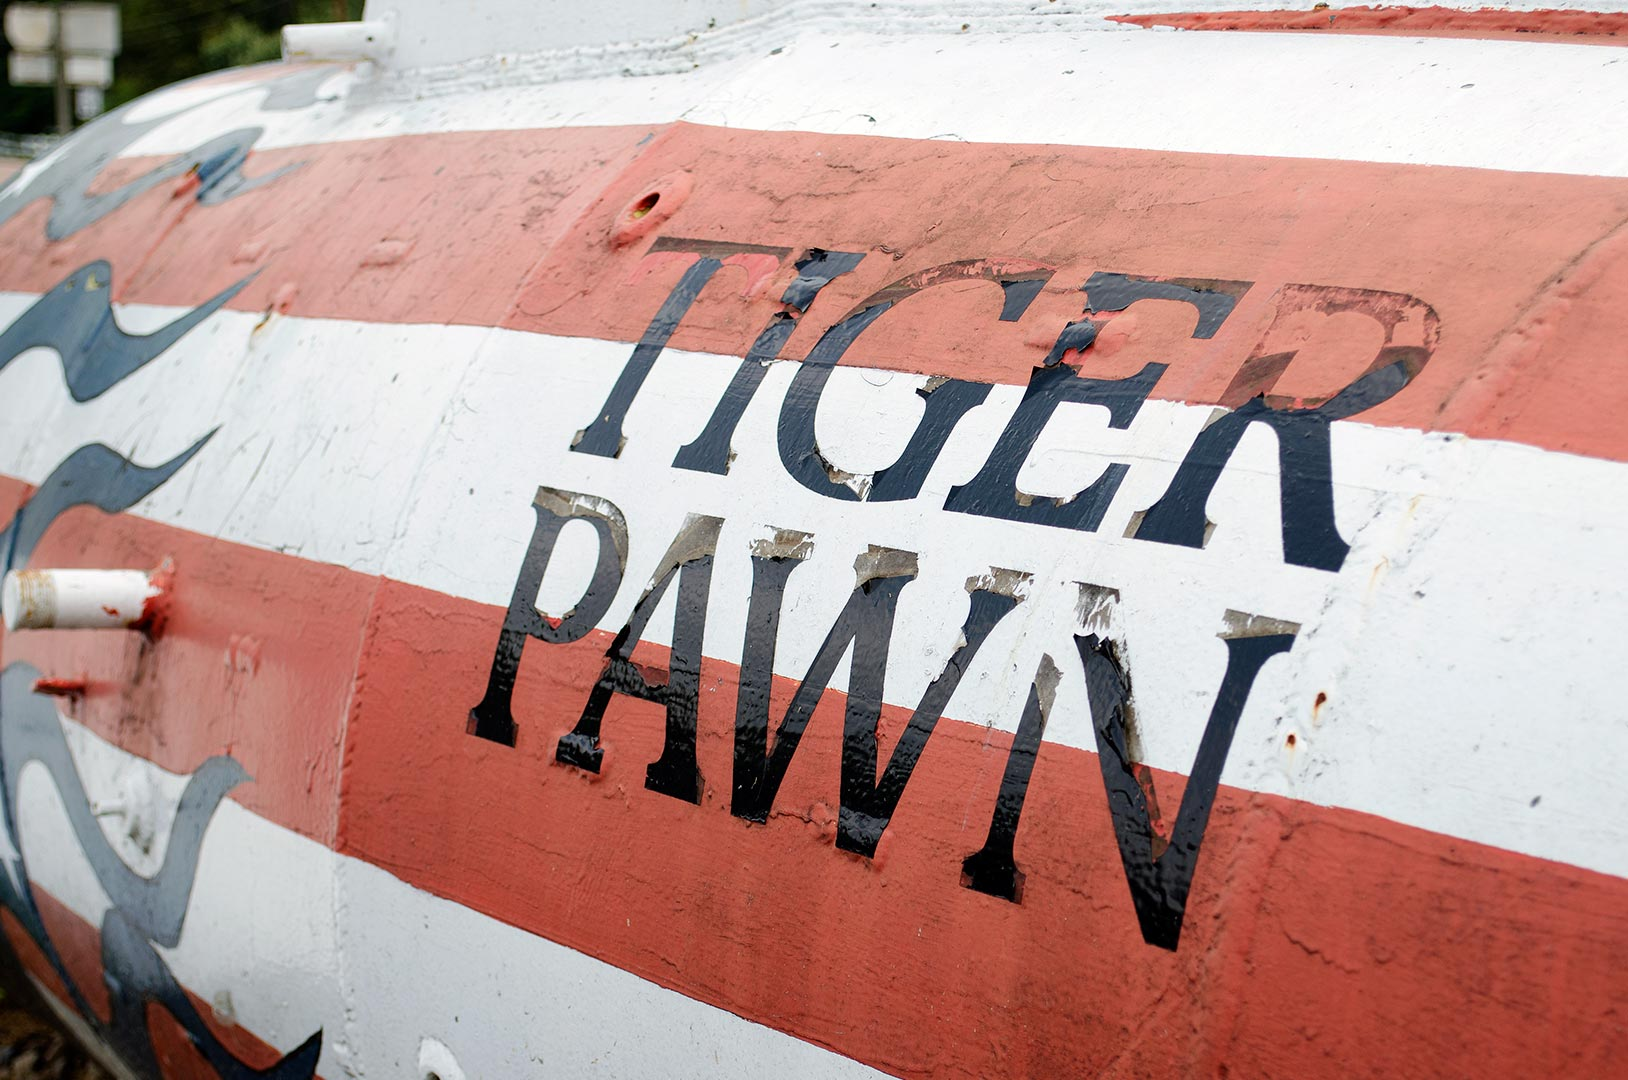 TigerPawn3